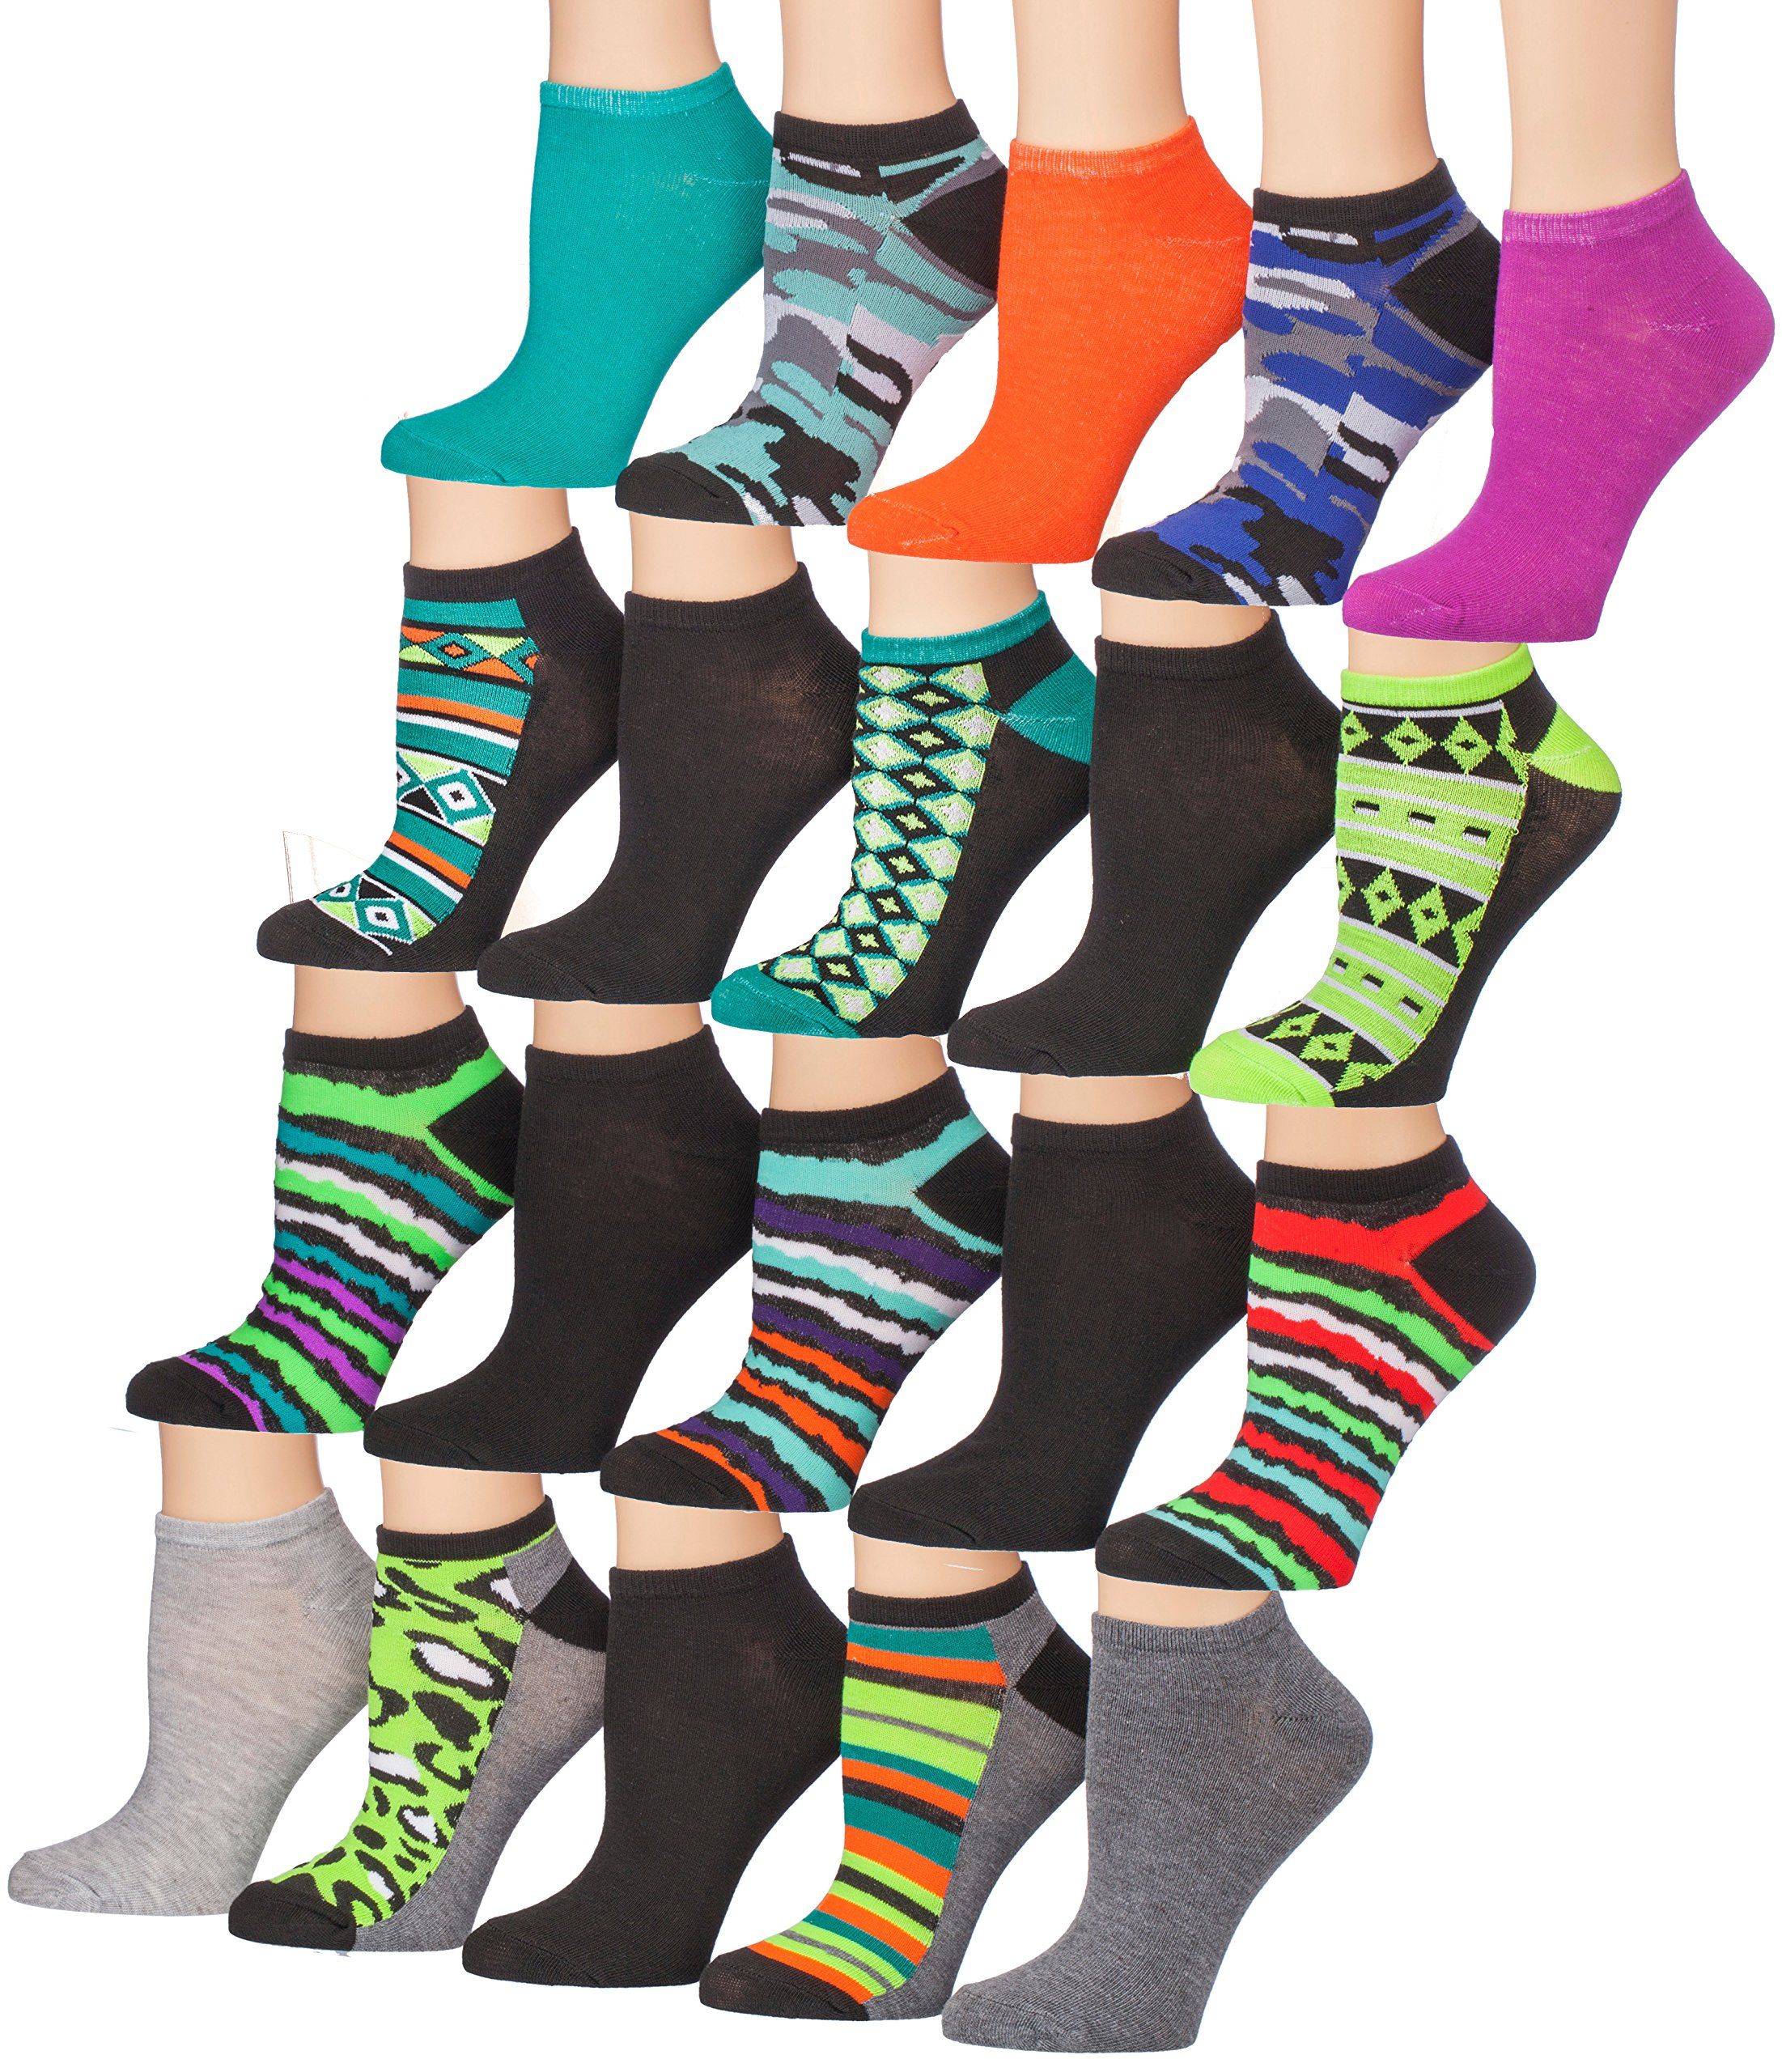 Tipi Toe Women's 20 Pairs Colorful Patterned Low Cut/No Show Socks (NS38-42)